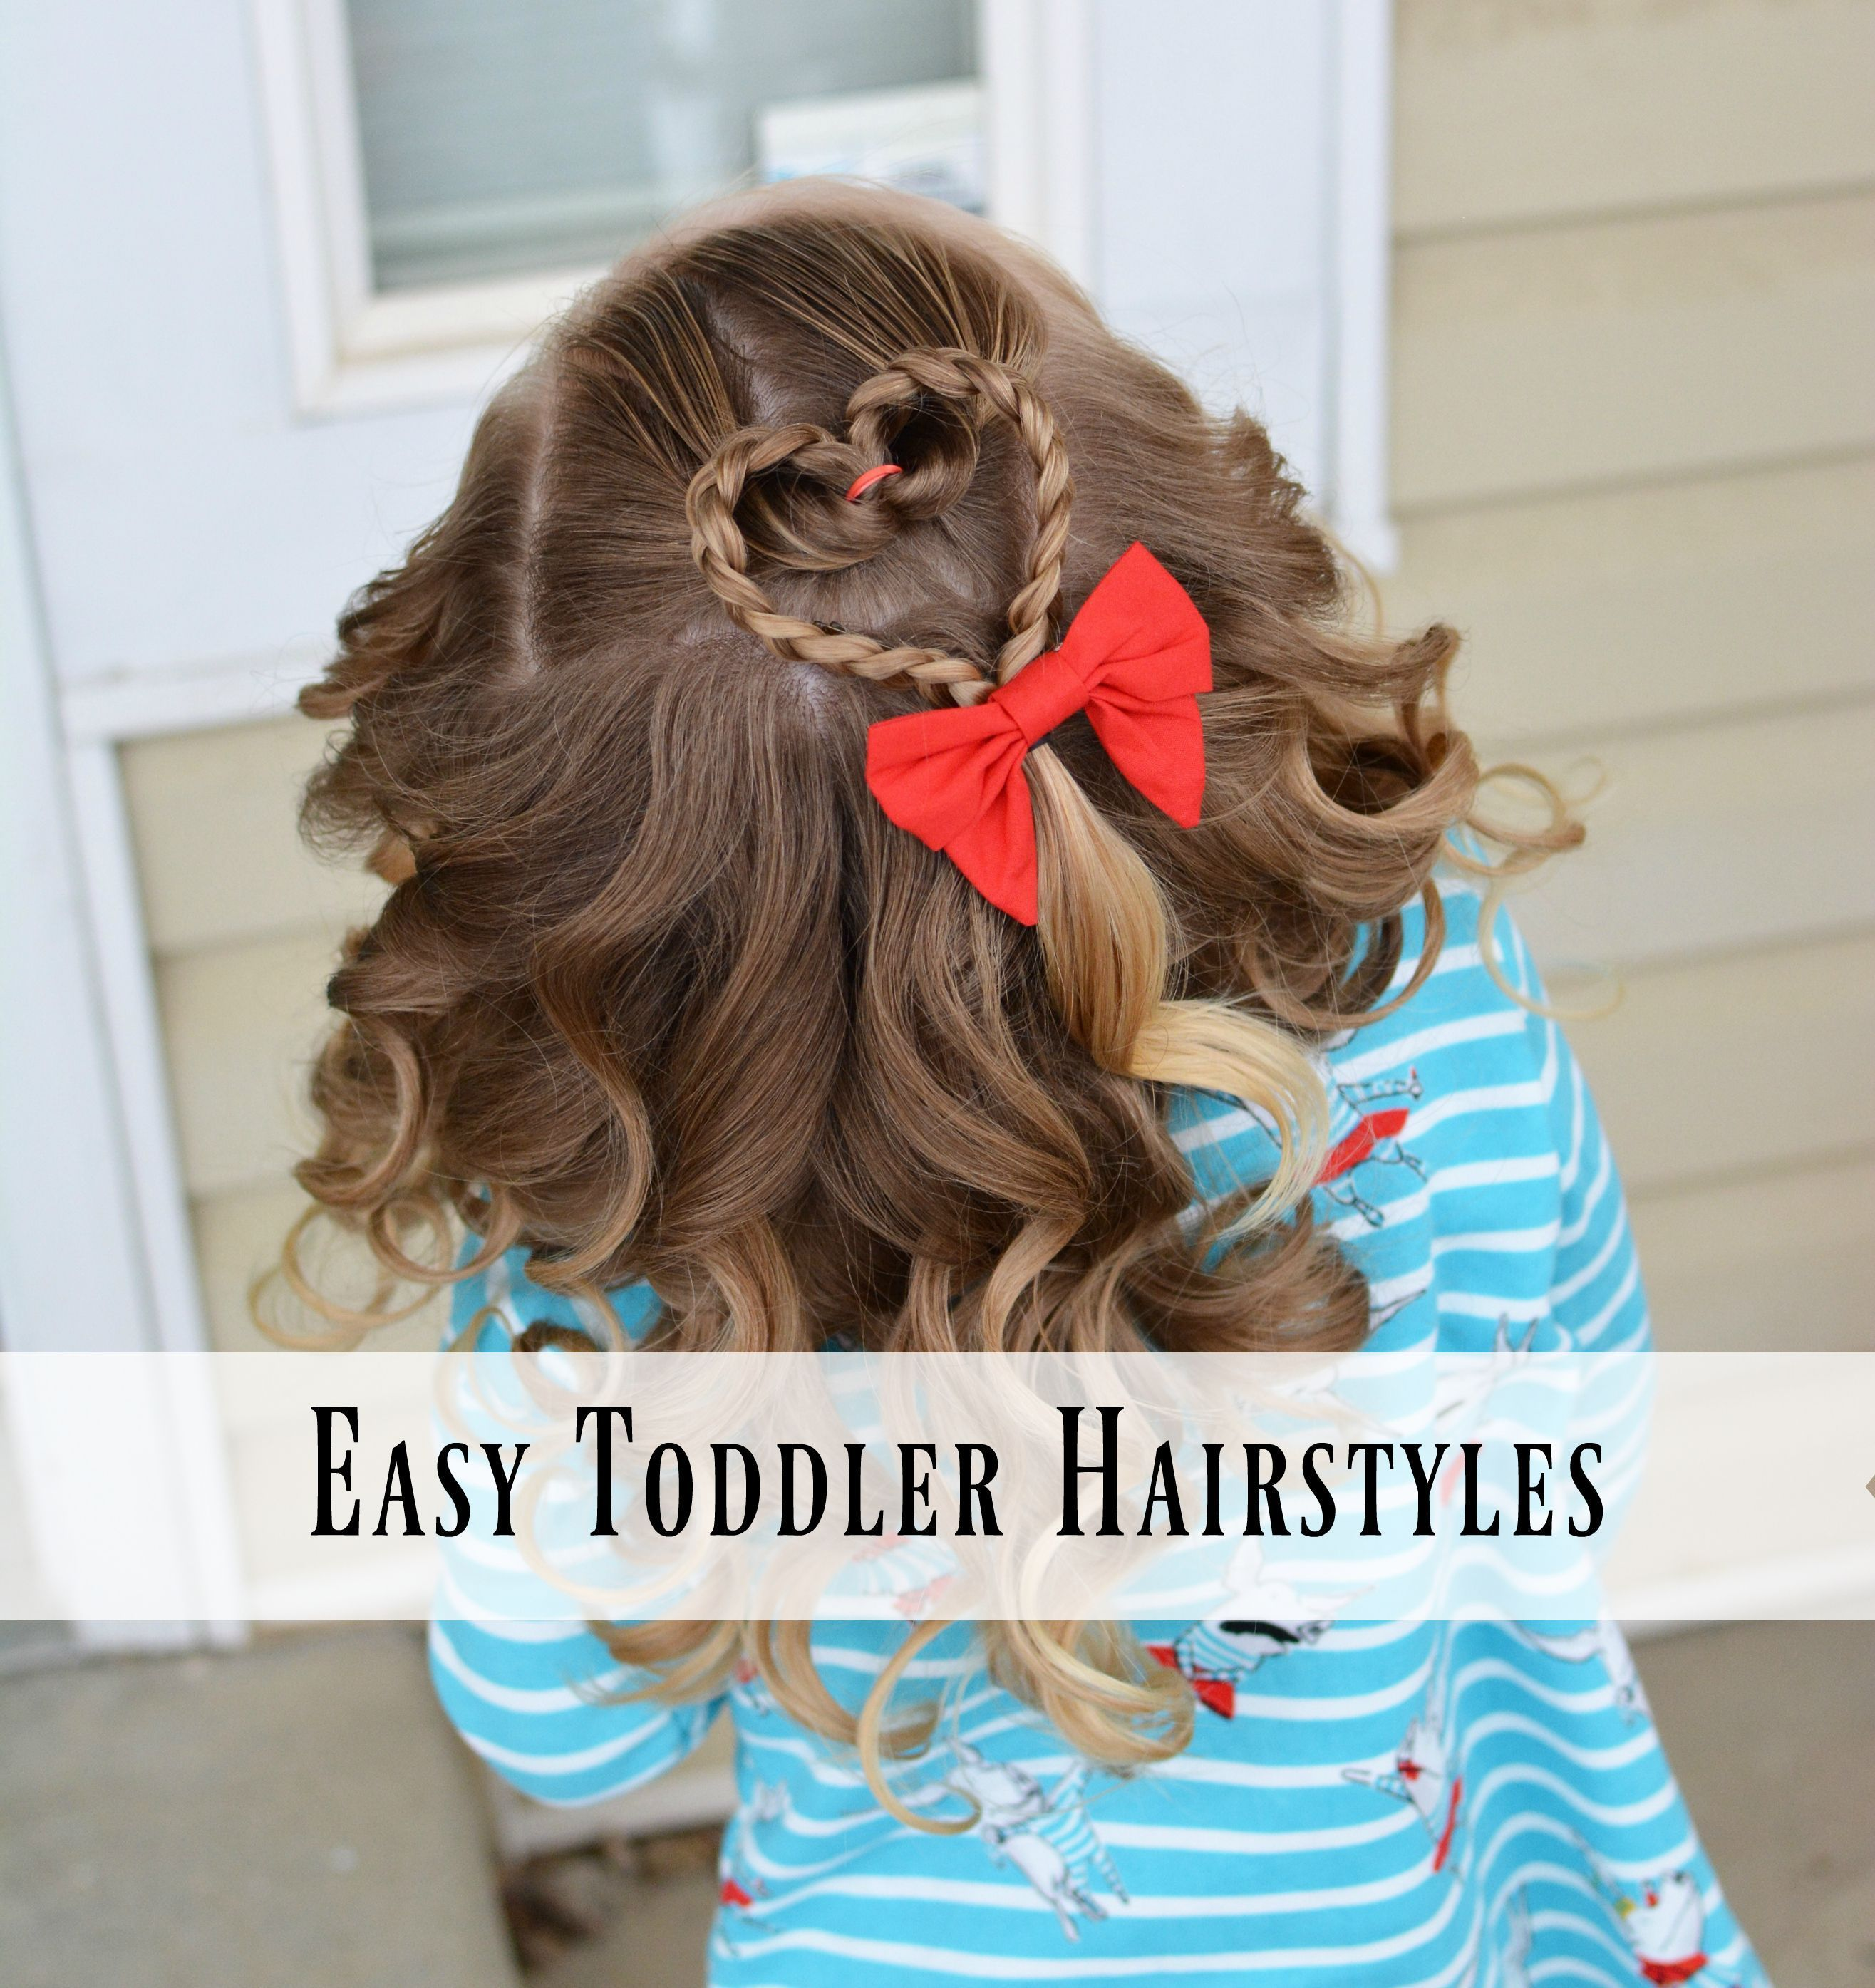 Easy toddler hairstyles your source for hair ideas and tips for